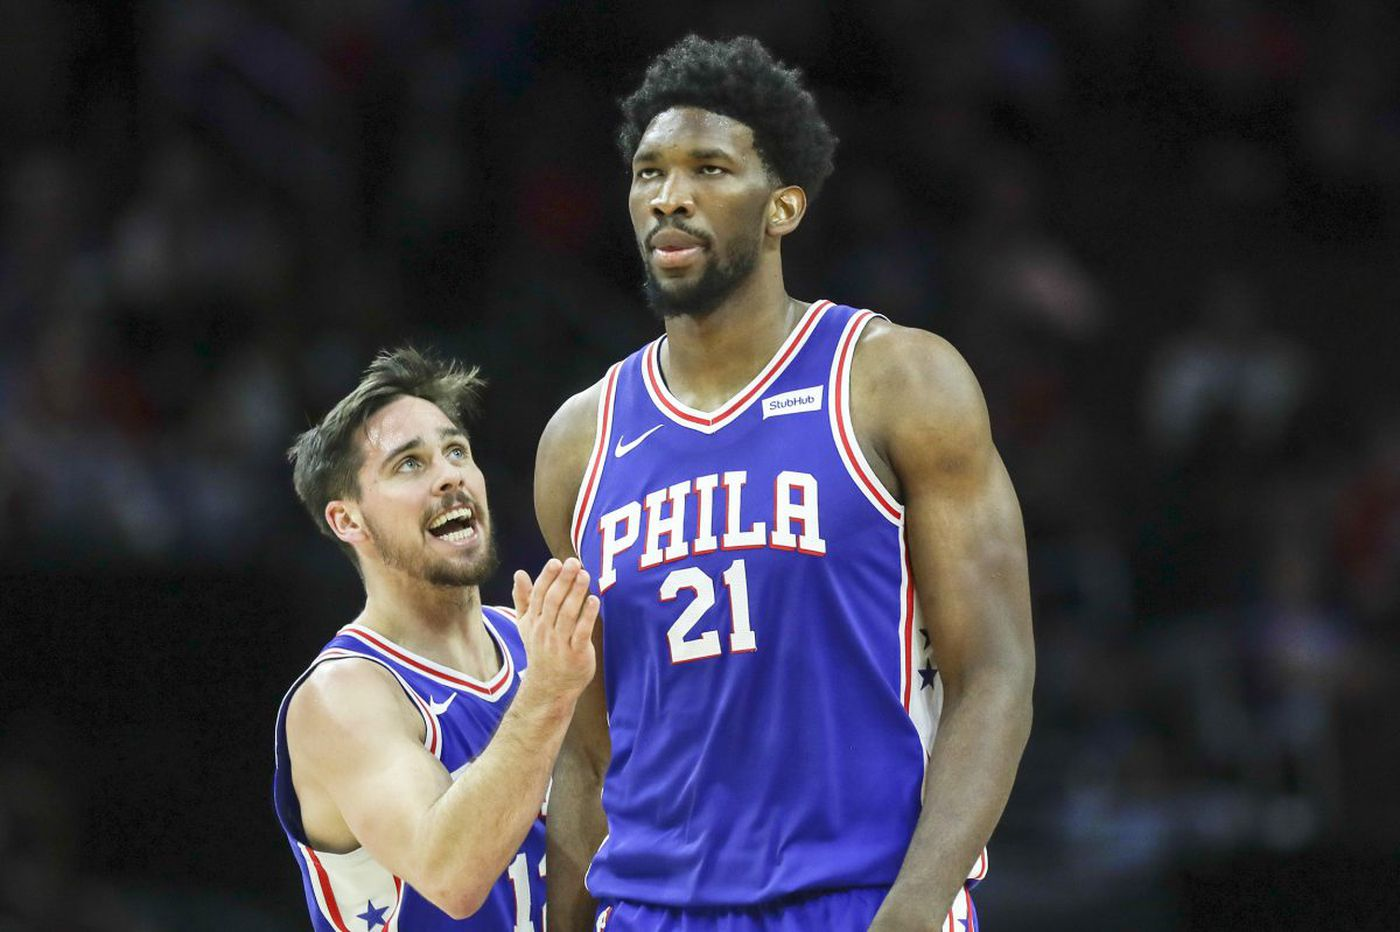 Sixers without Joel Embiid, T.J. McConnell and most likely Dario Saric versus Cavaliers